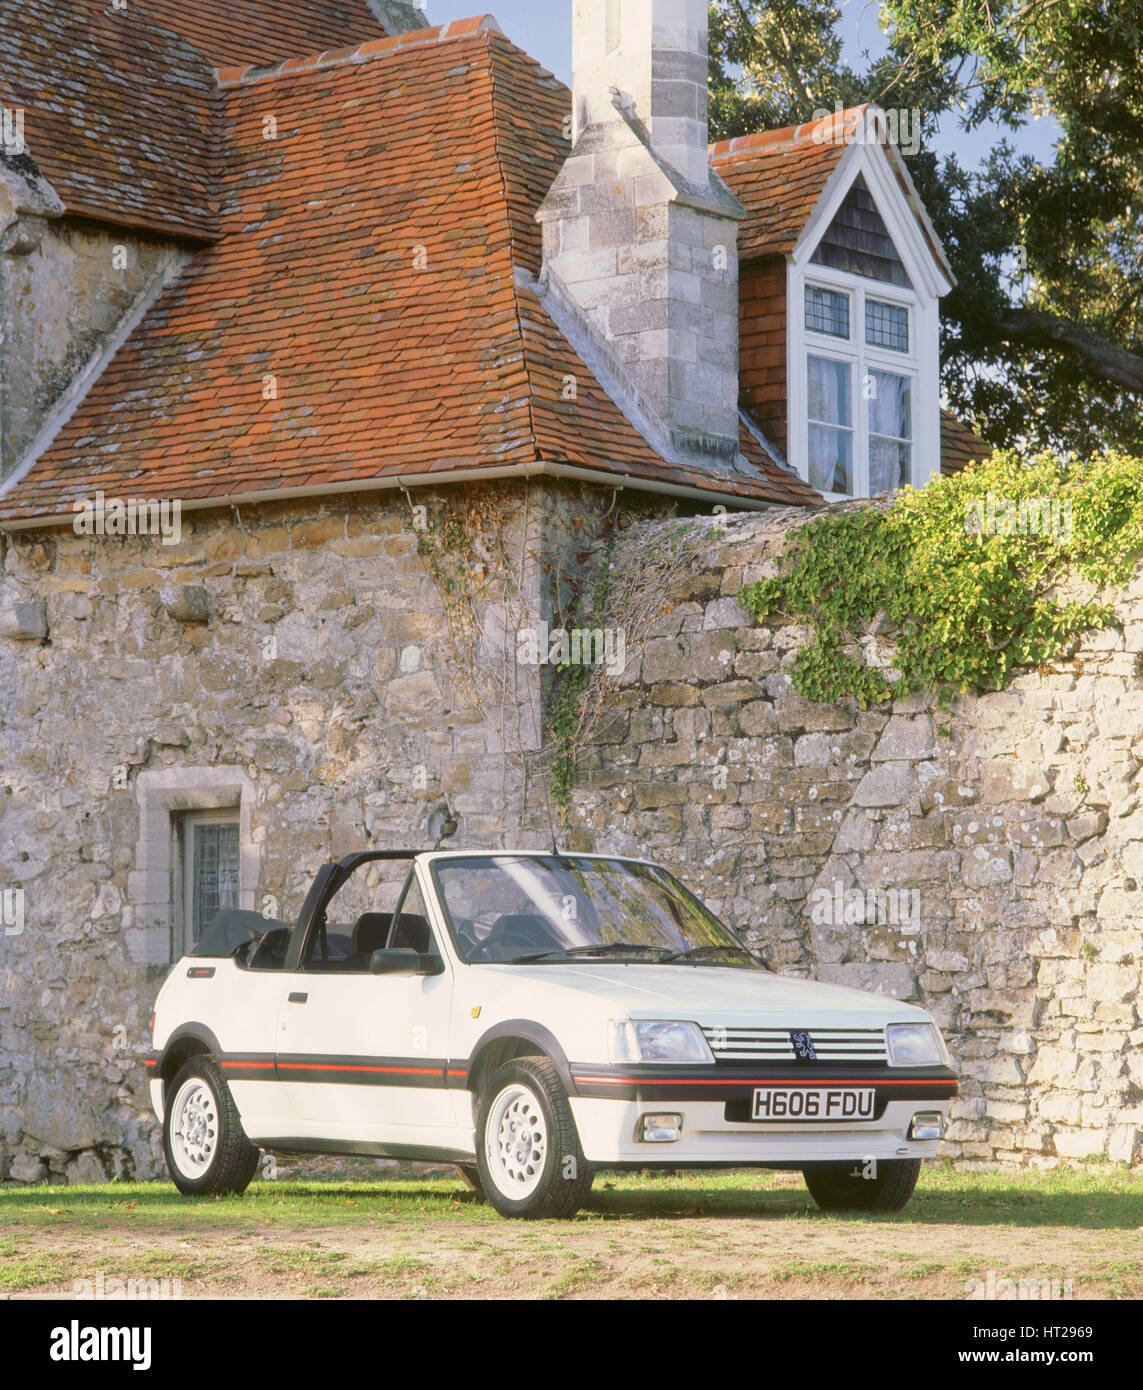 1990 Peugeout 205 Cti. Artist: Unknown. - Stock Image